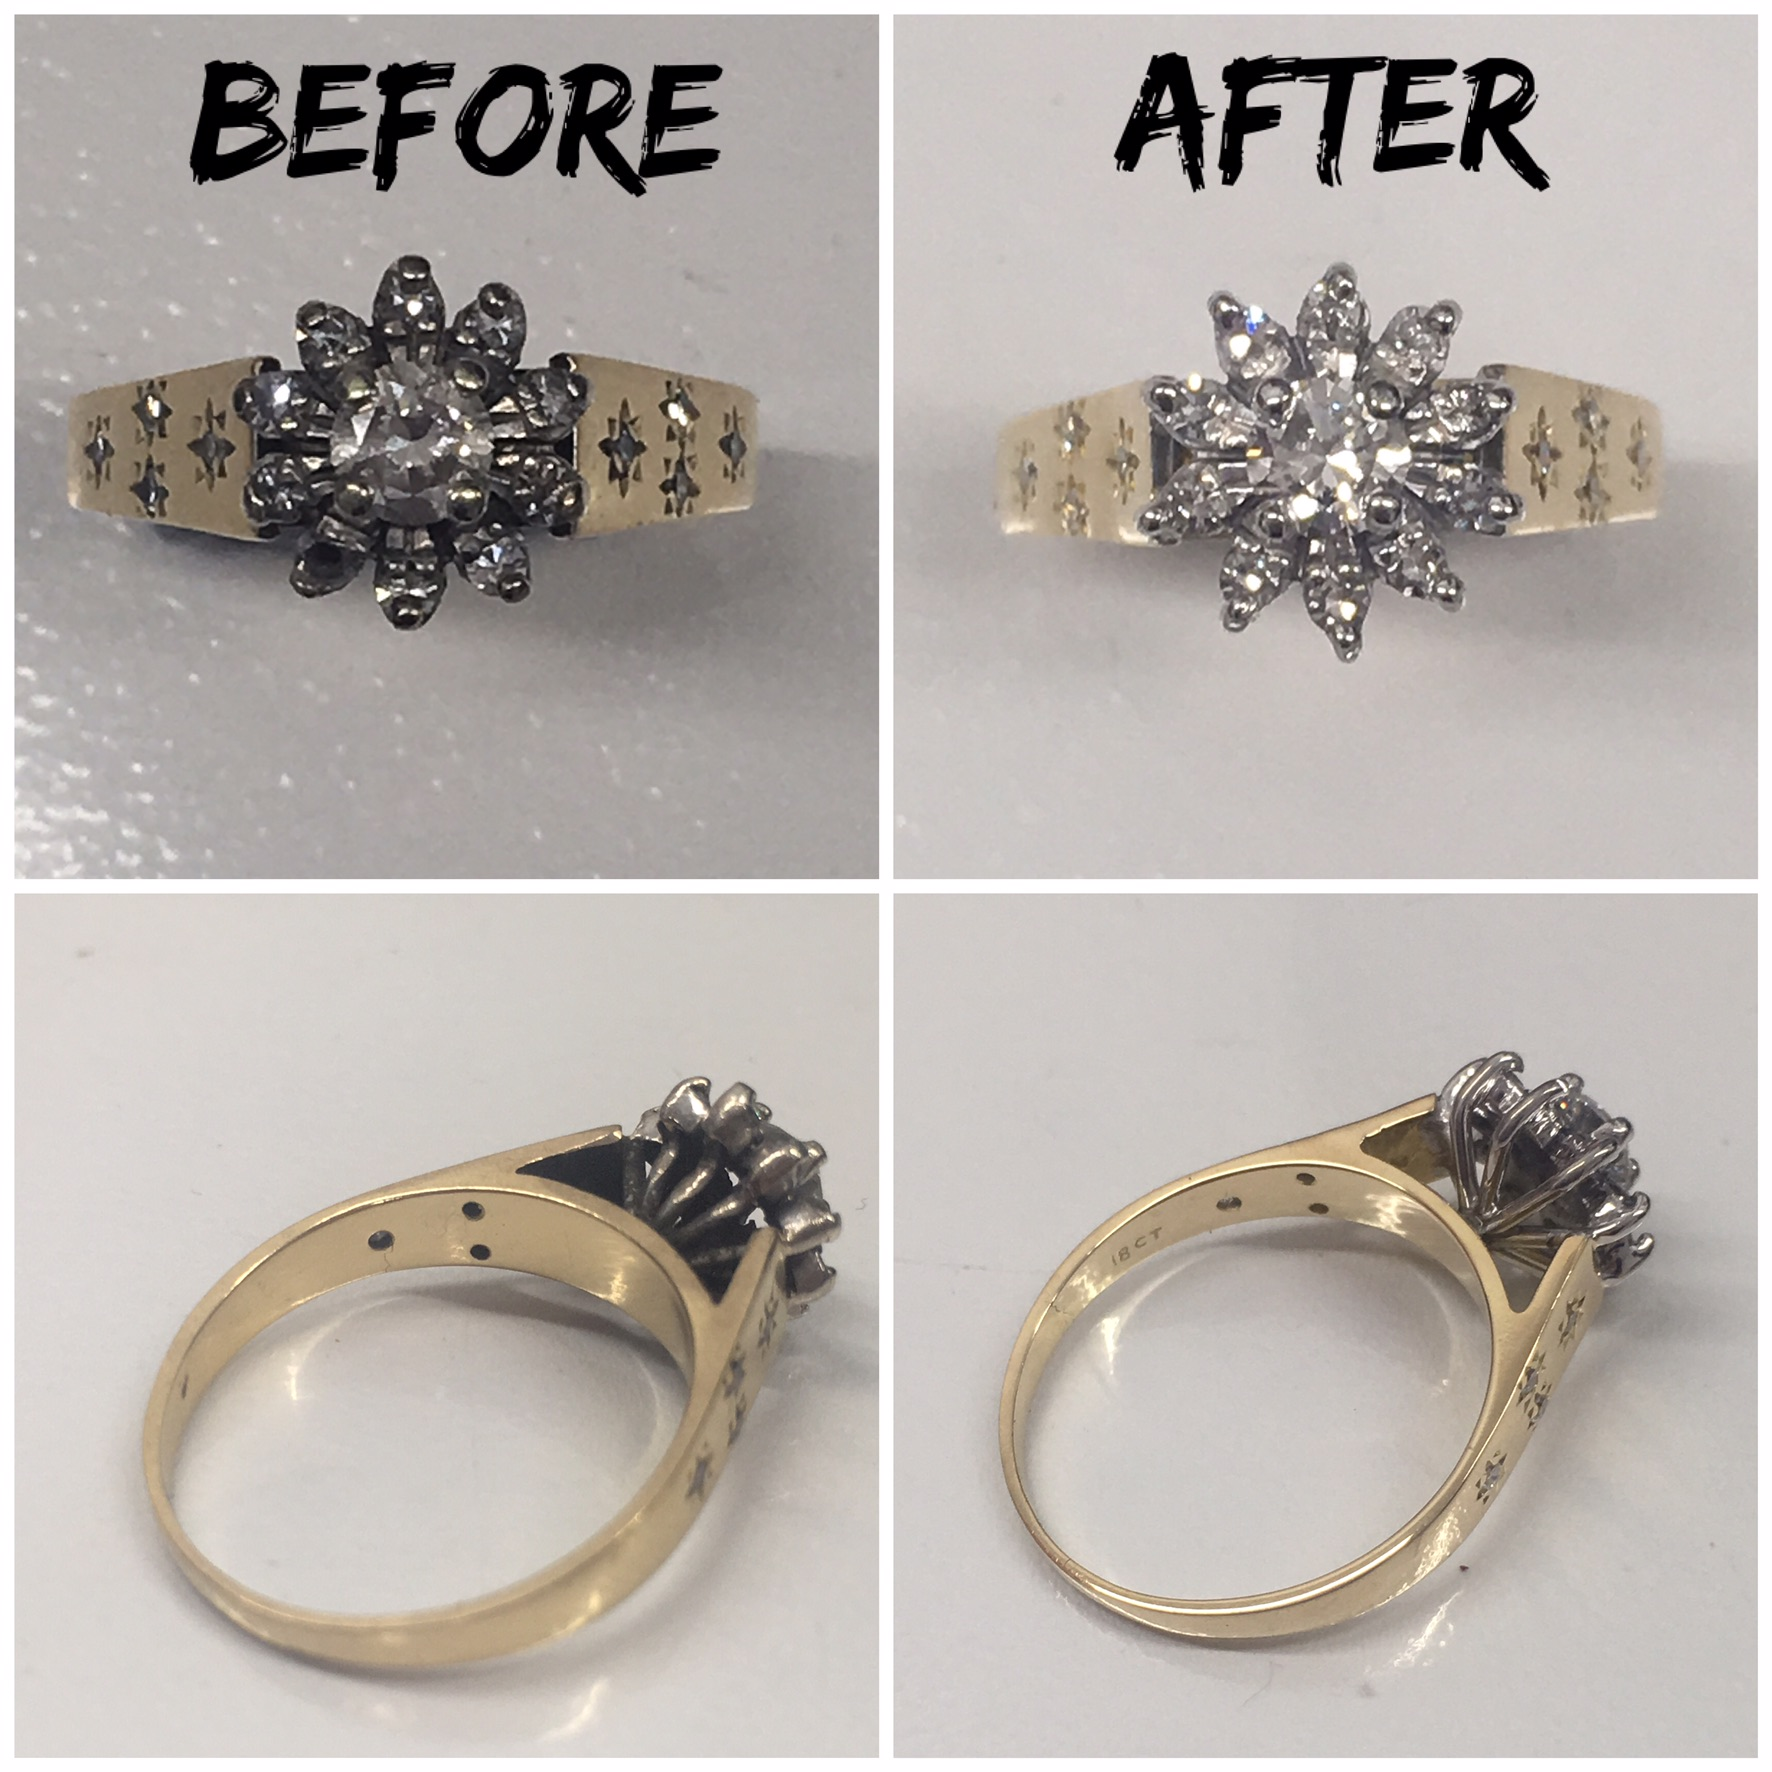 Repair Before and after